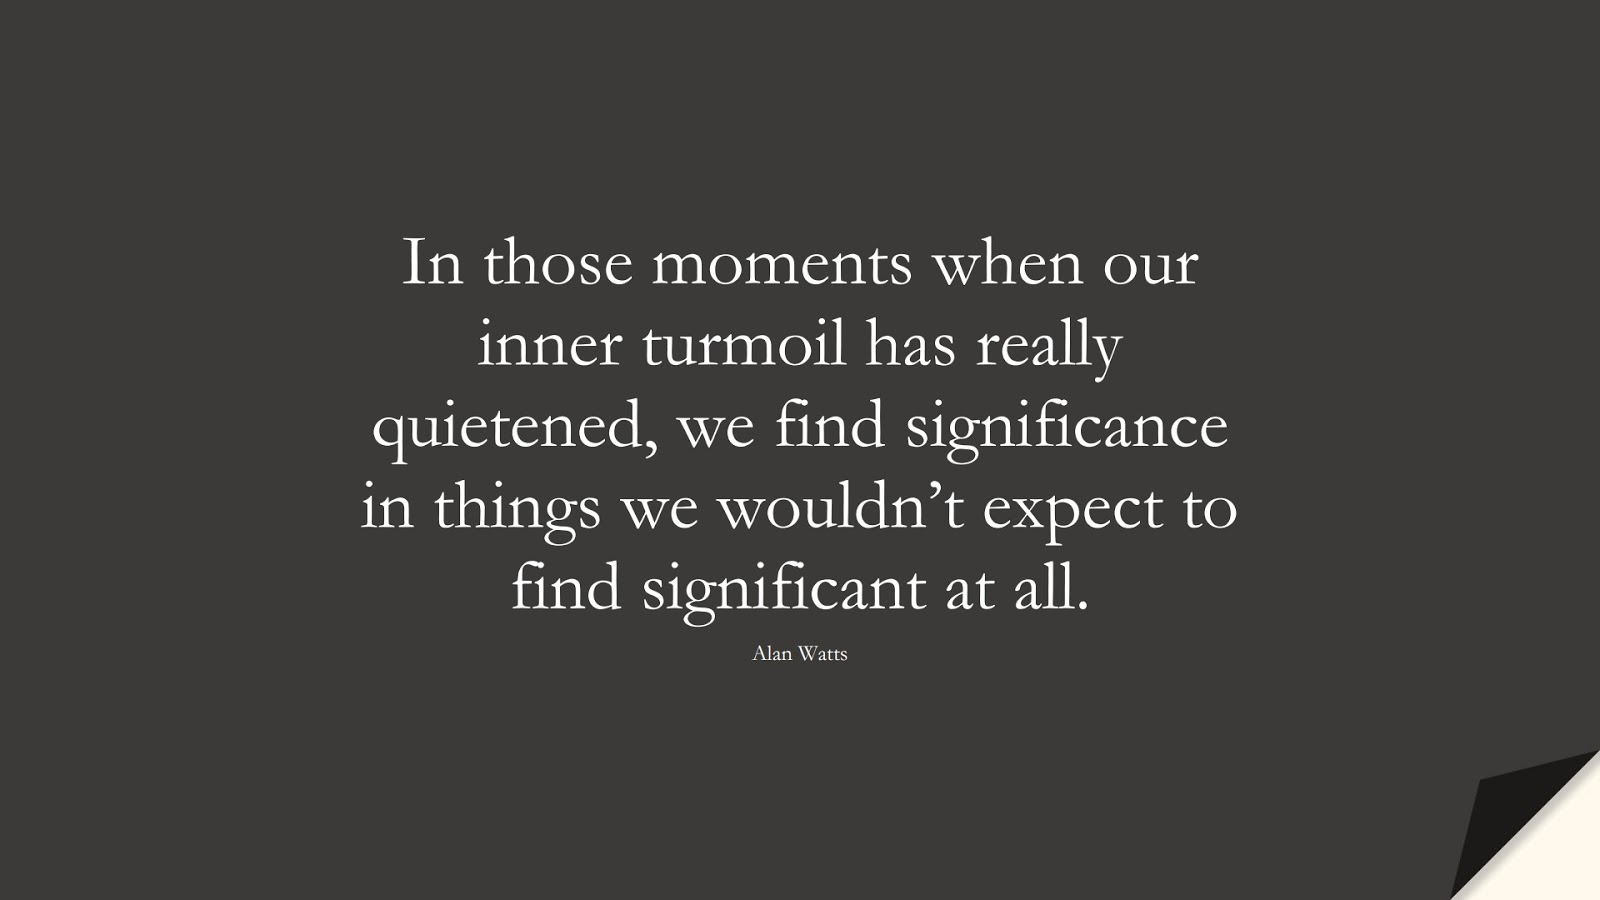 In those moments when our inner turmoil has really quietened, we find significance in things we wouldn't expect to find significant at all. (Alan Watts);  #DepressionQuotes